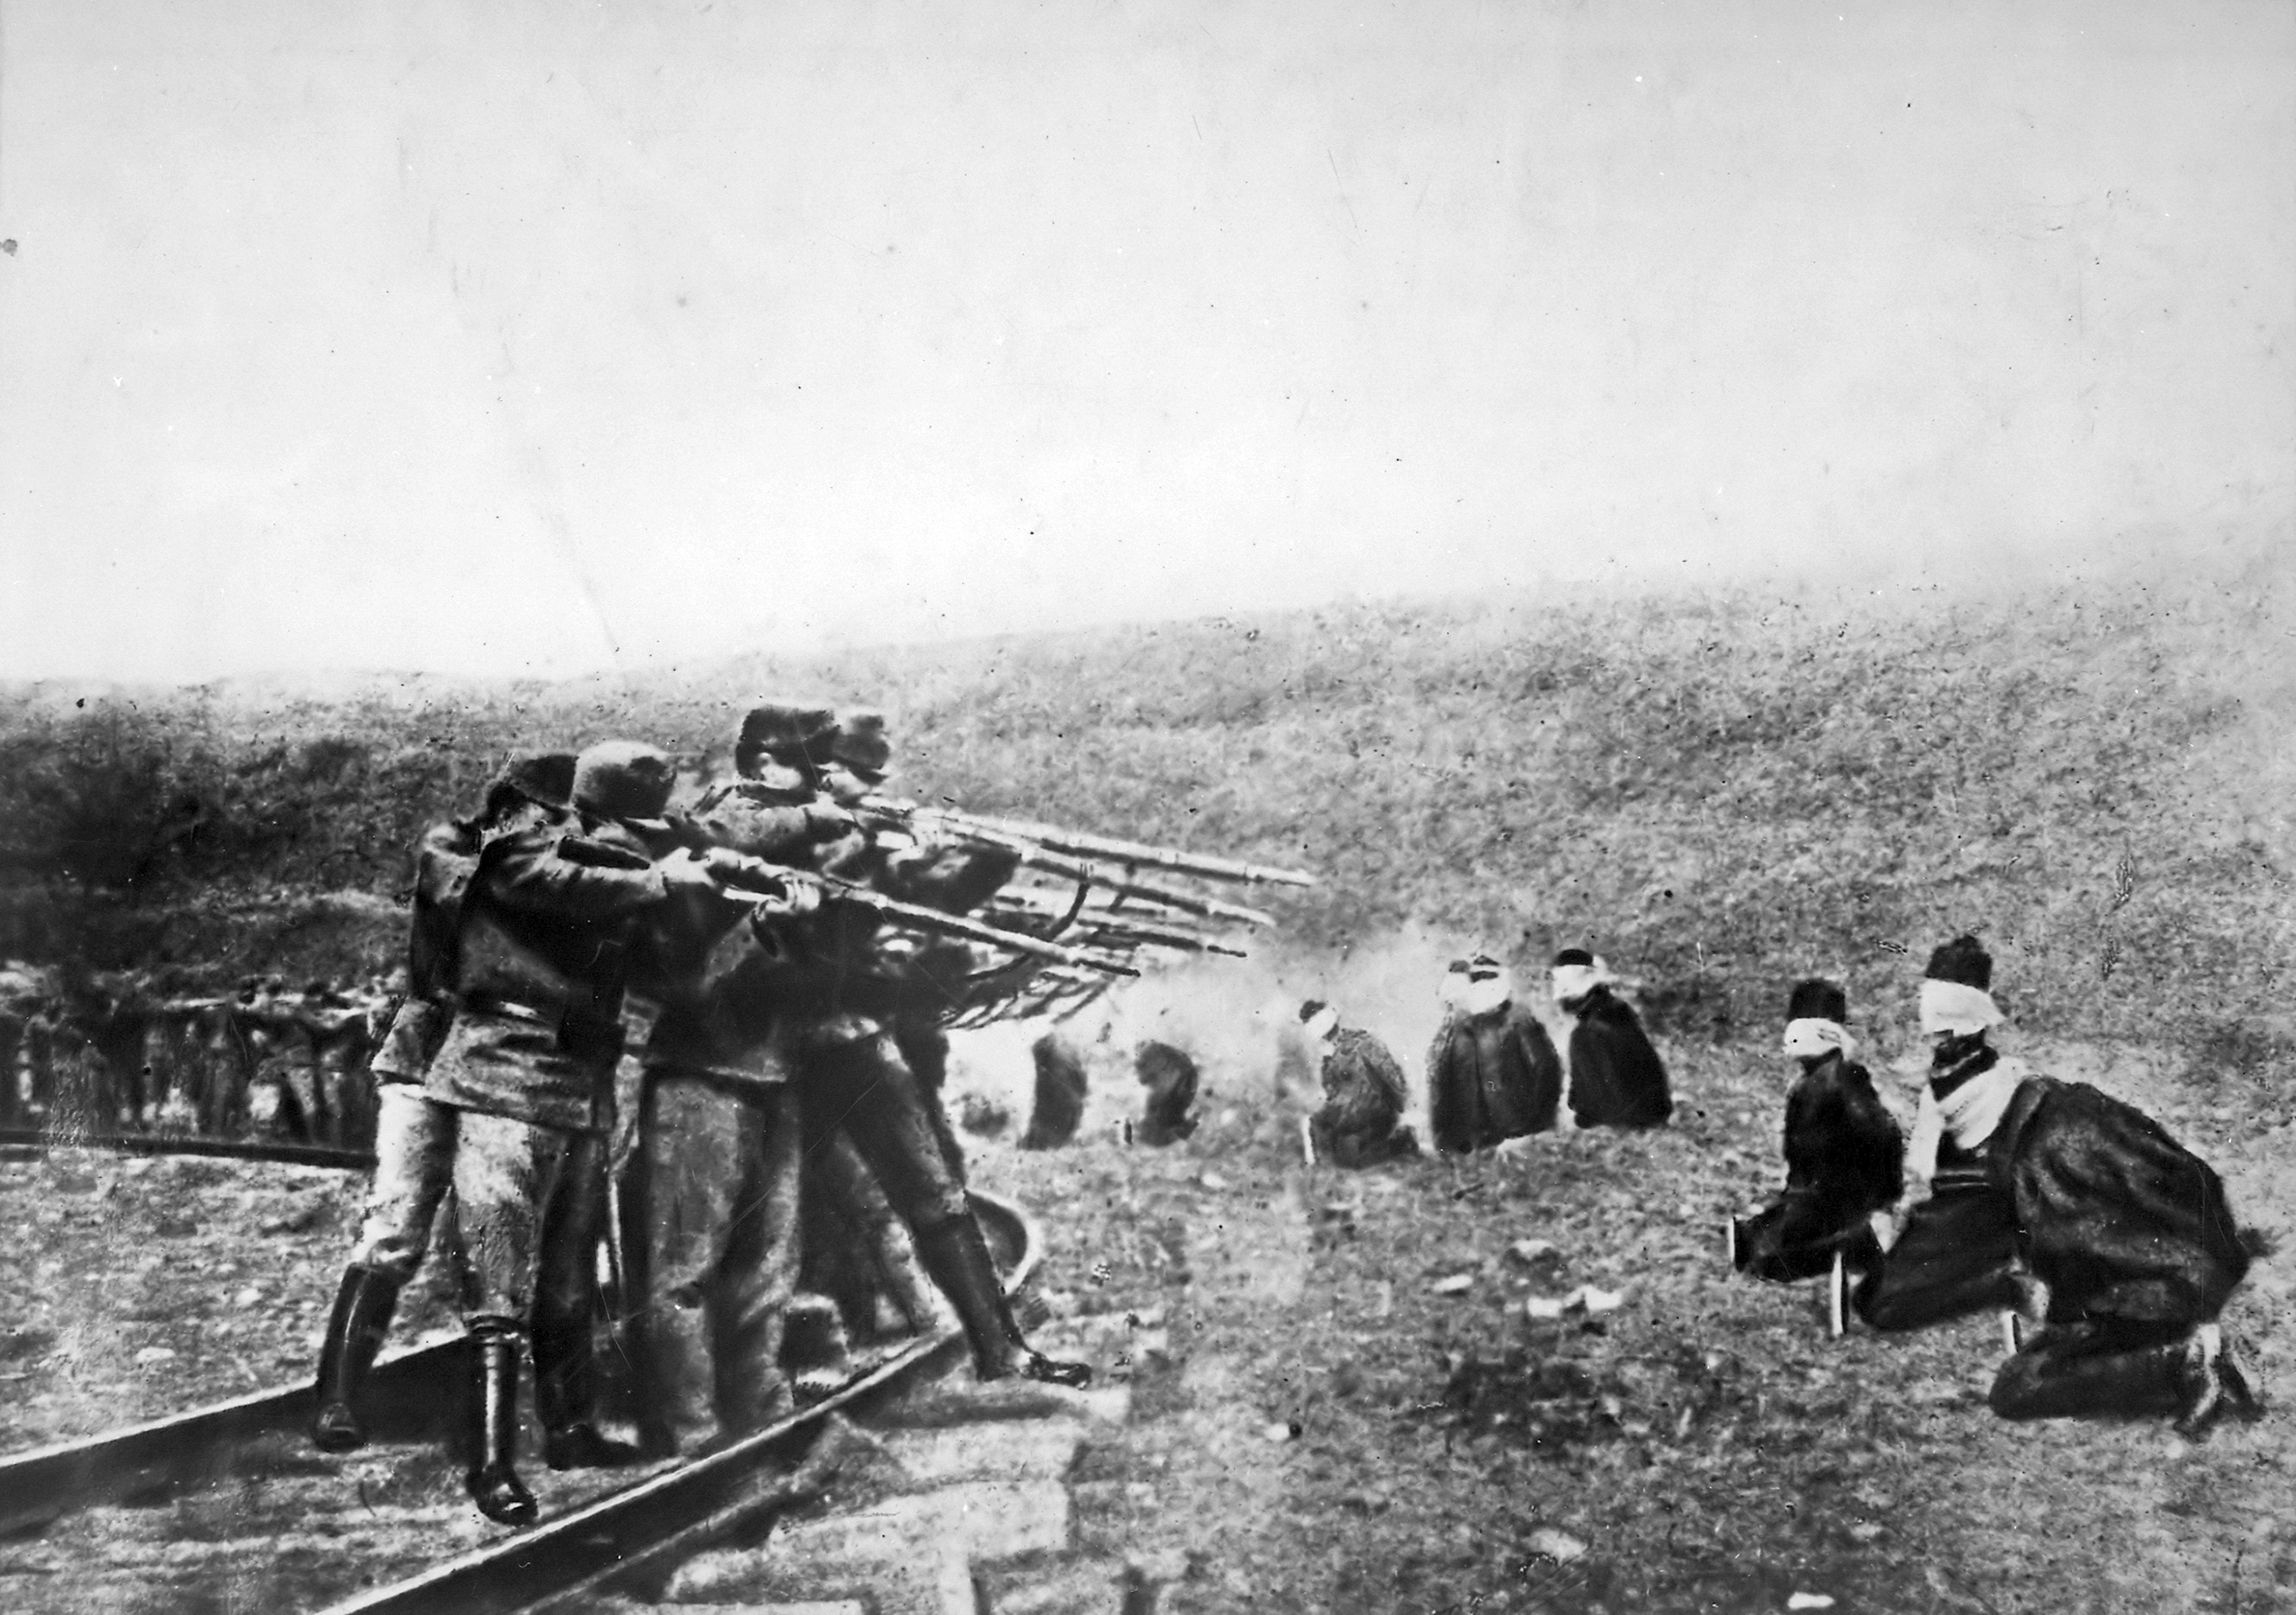 Austrians executing Serbs, World War One, date uncertain